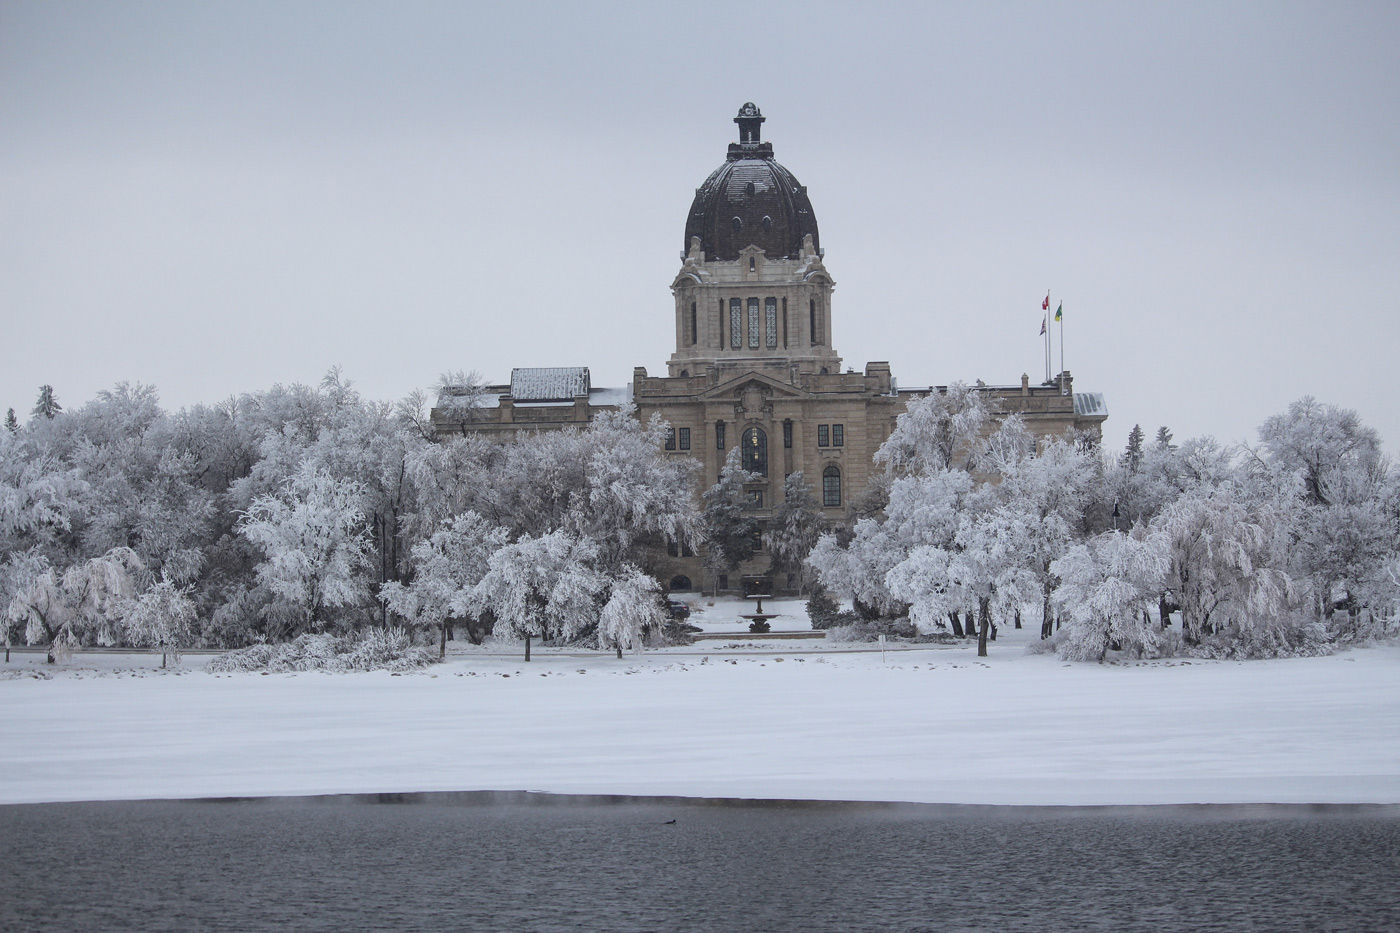 Dress warm and enjoy all there is to see in February when staying at hotels in Regina, Saskatchewan.